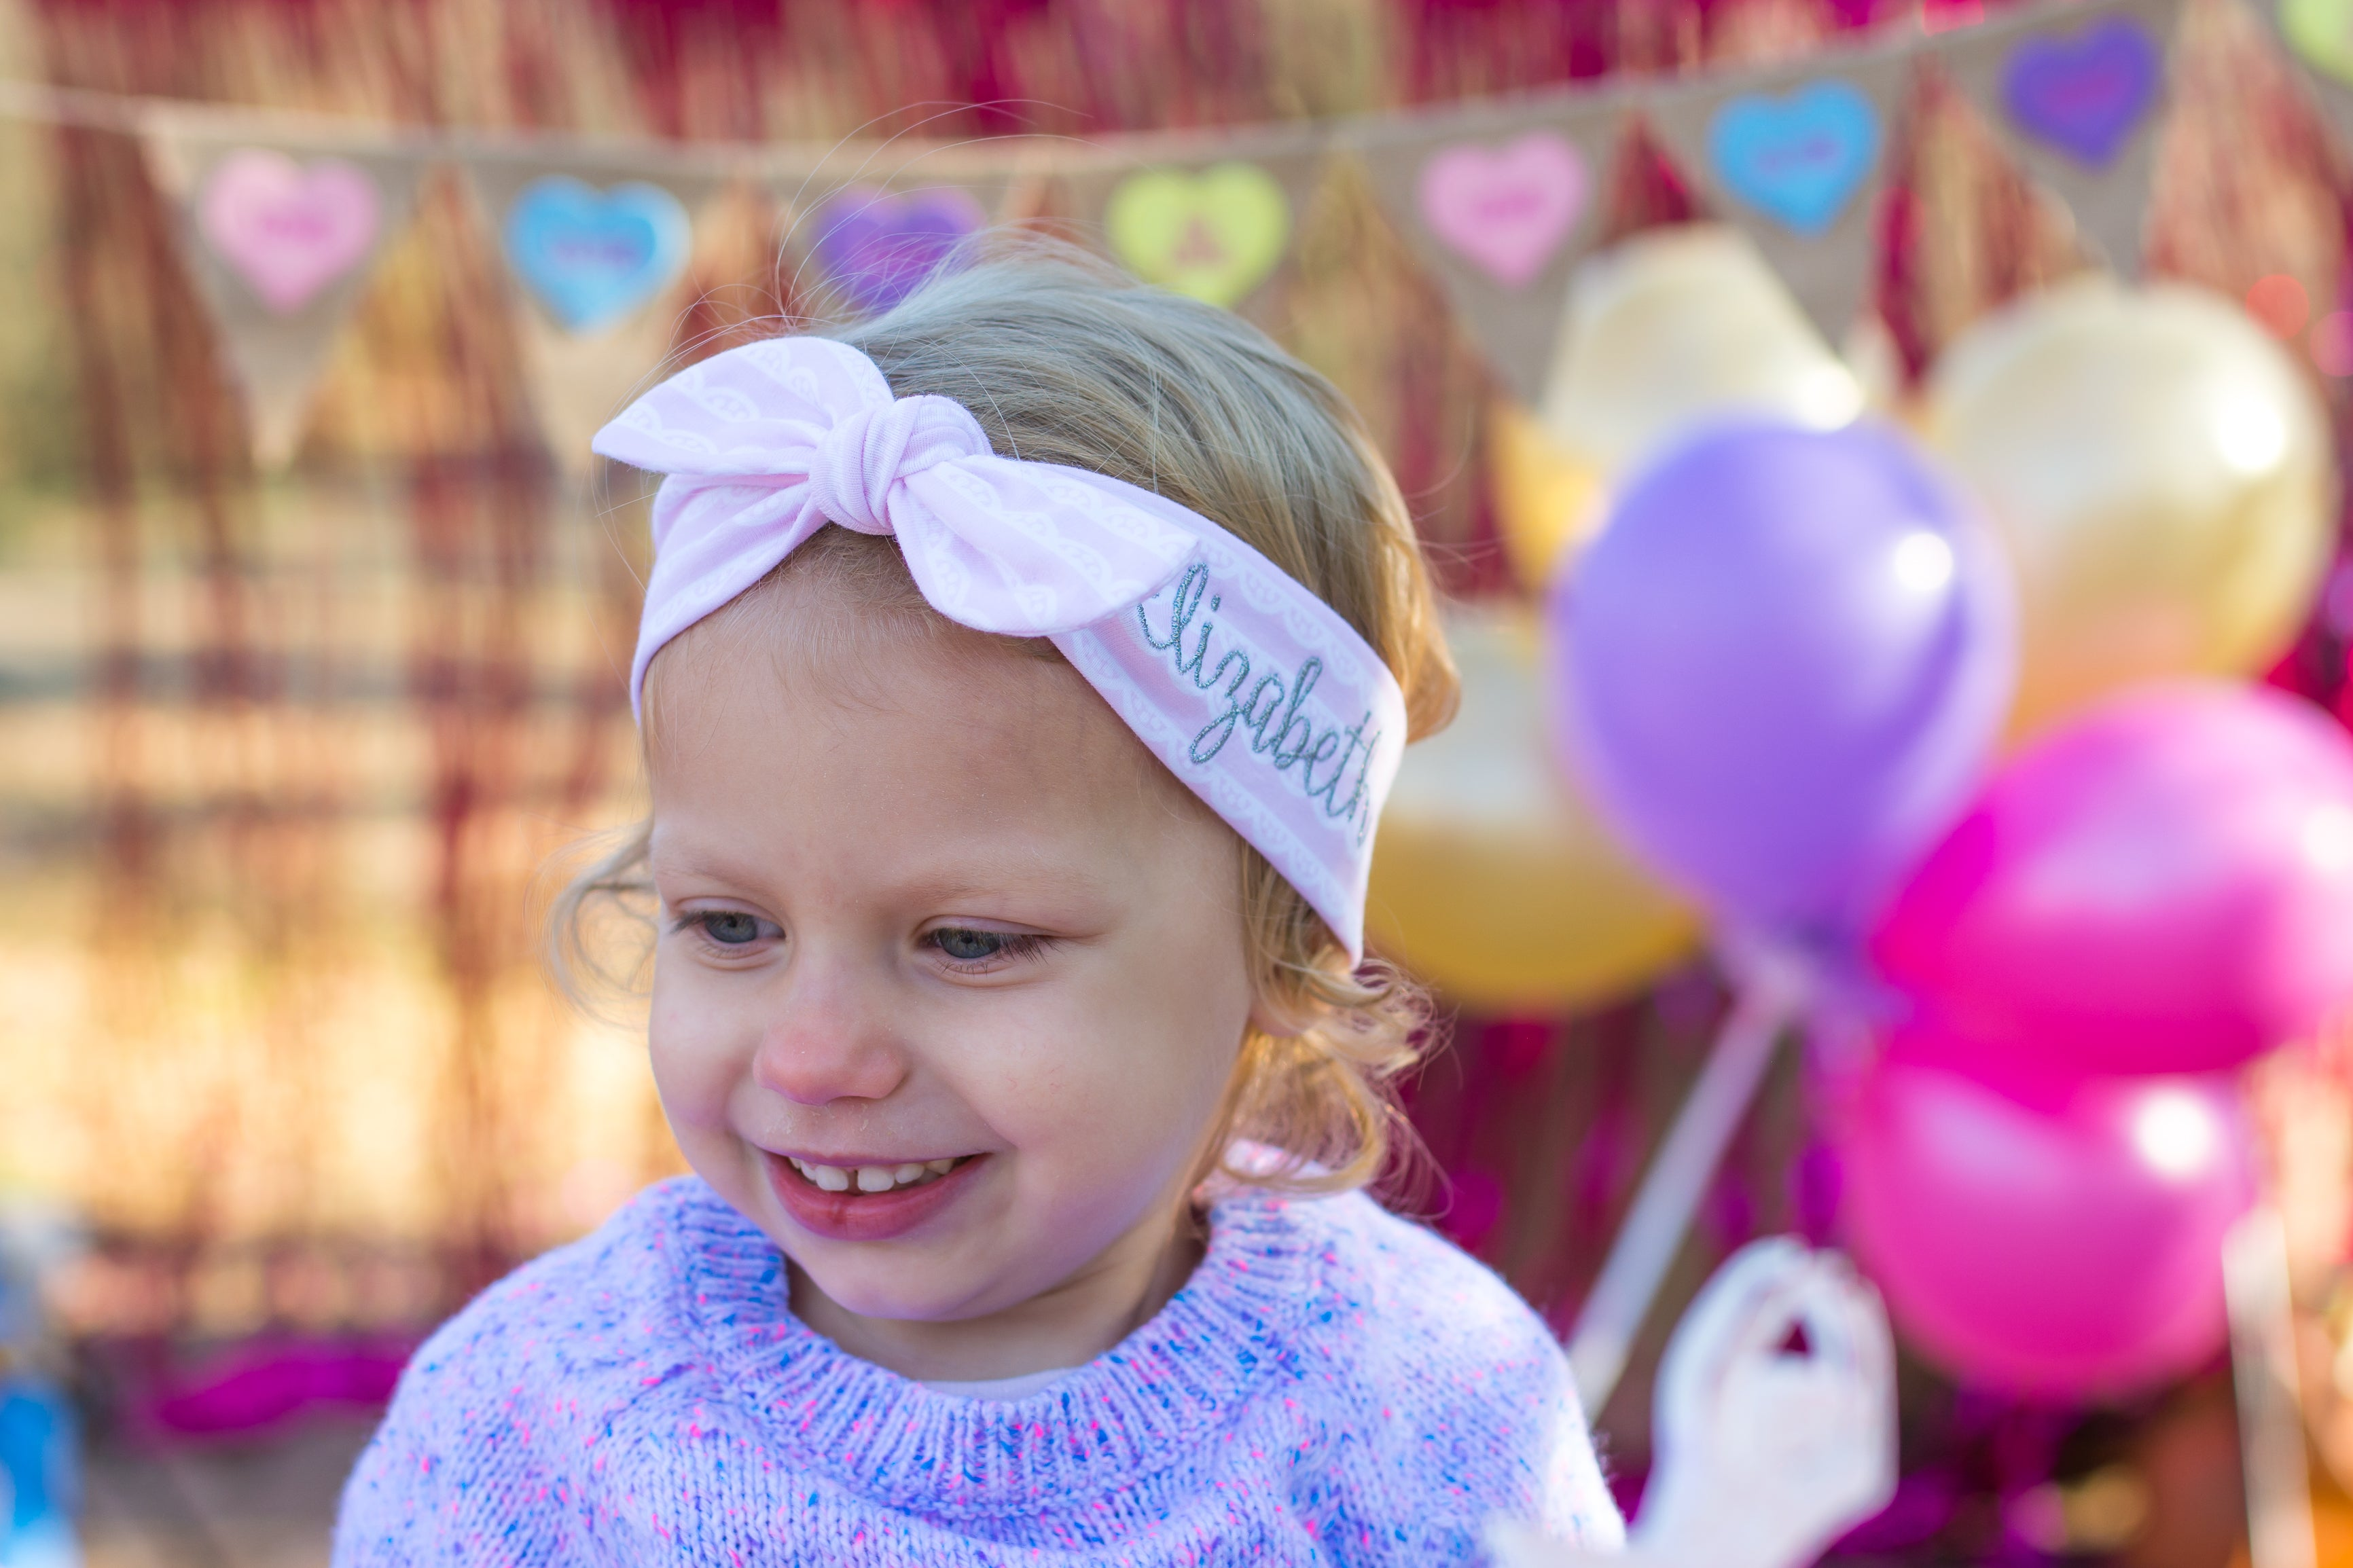 little girl wearing a top knot headband with her name on the side